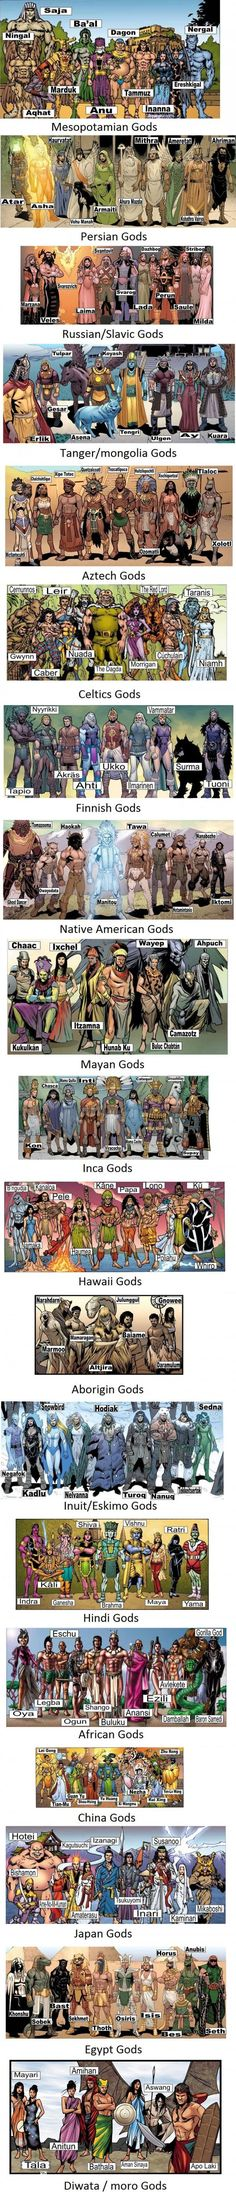 Choose your favorite Gods team, and give them skills. - 9GAG